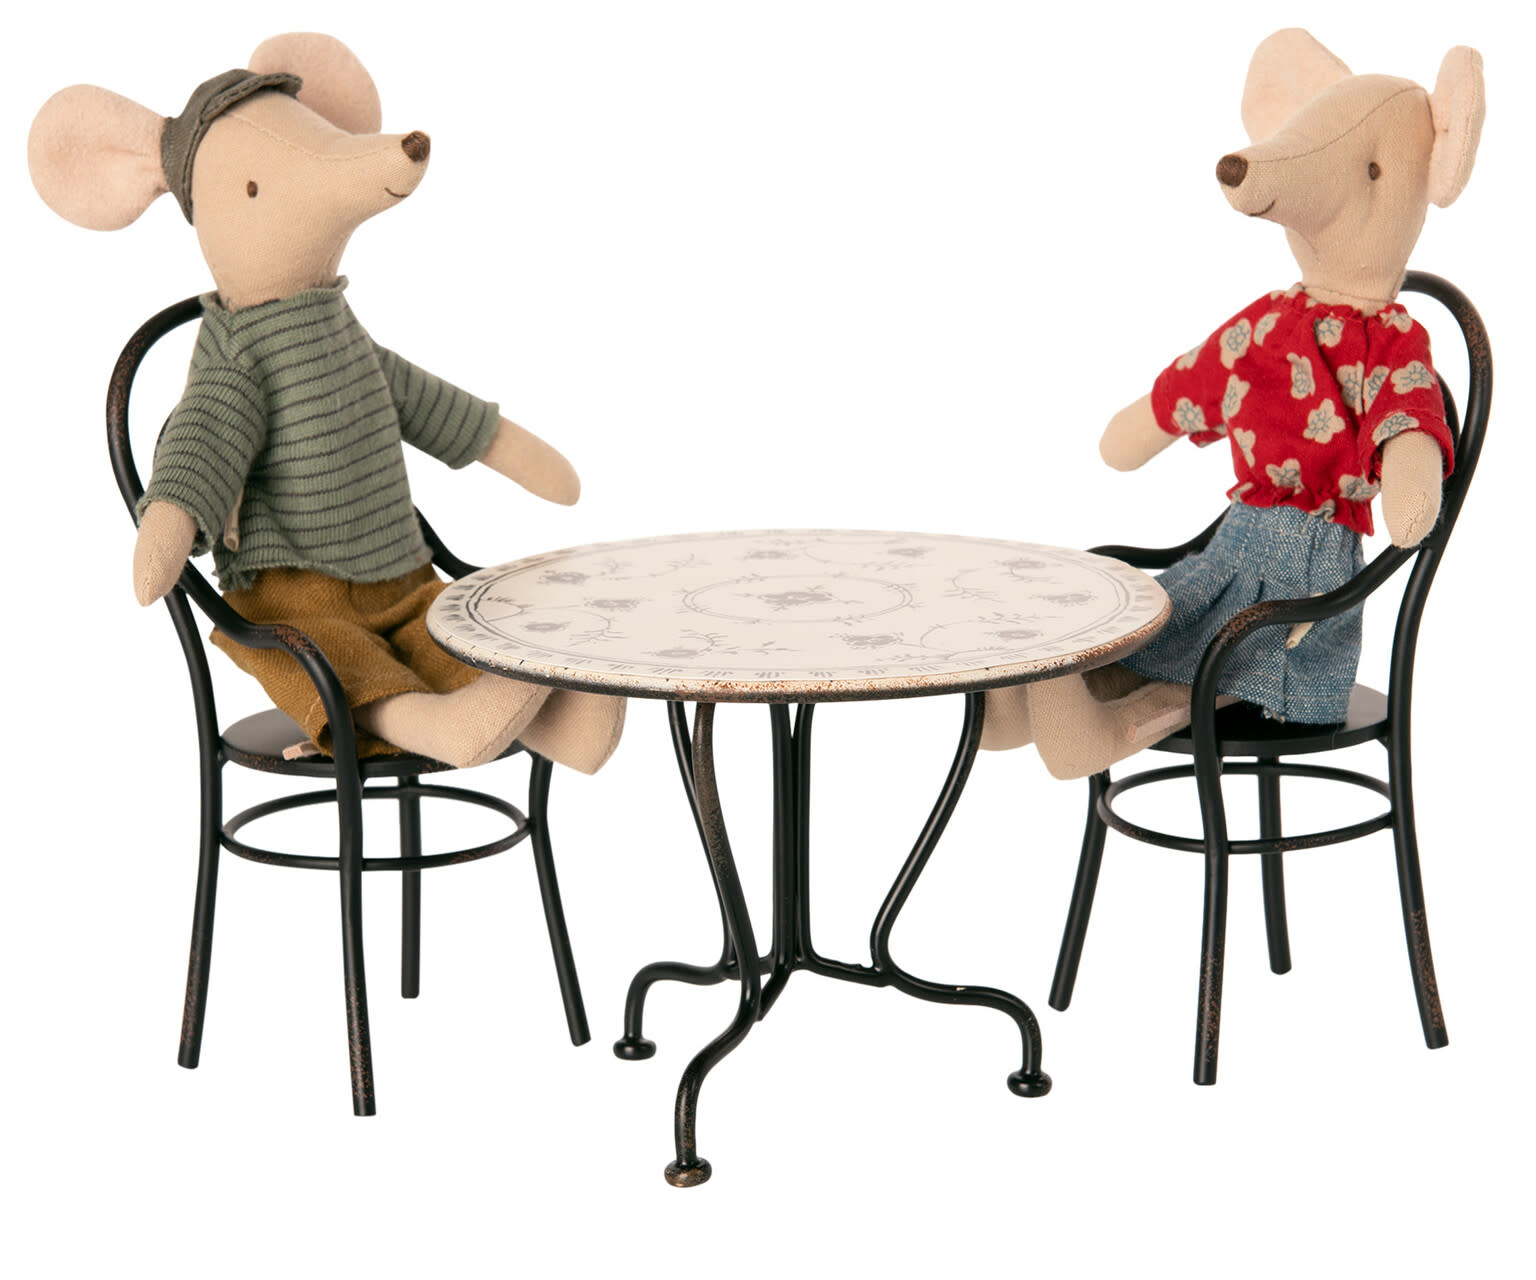 Dining table set with 2 chairs-2